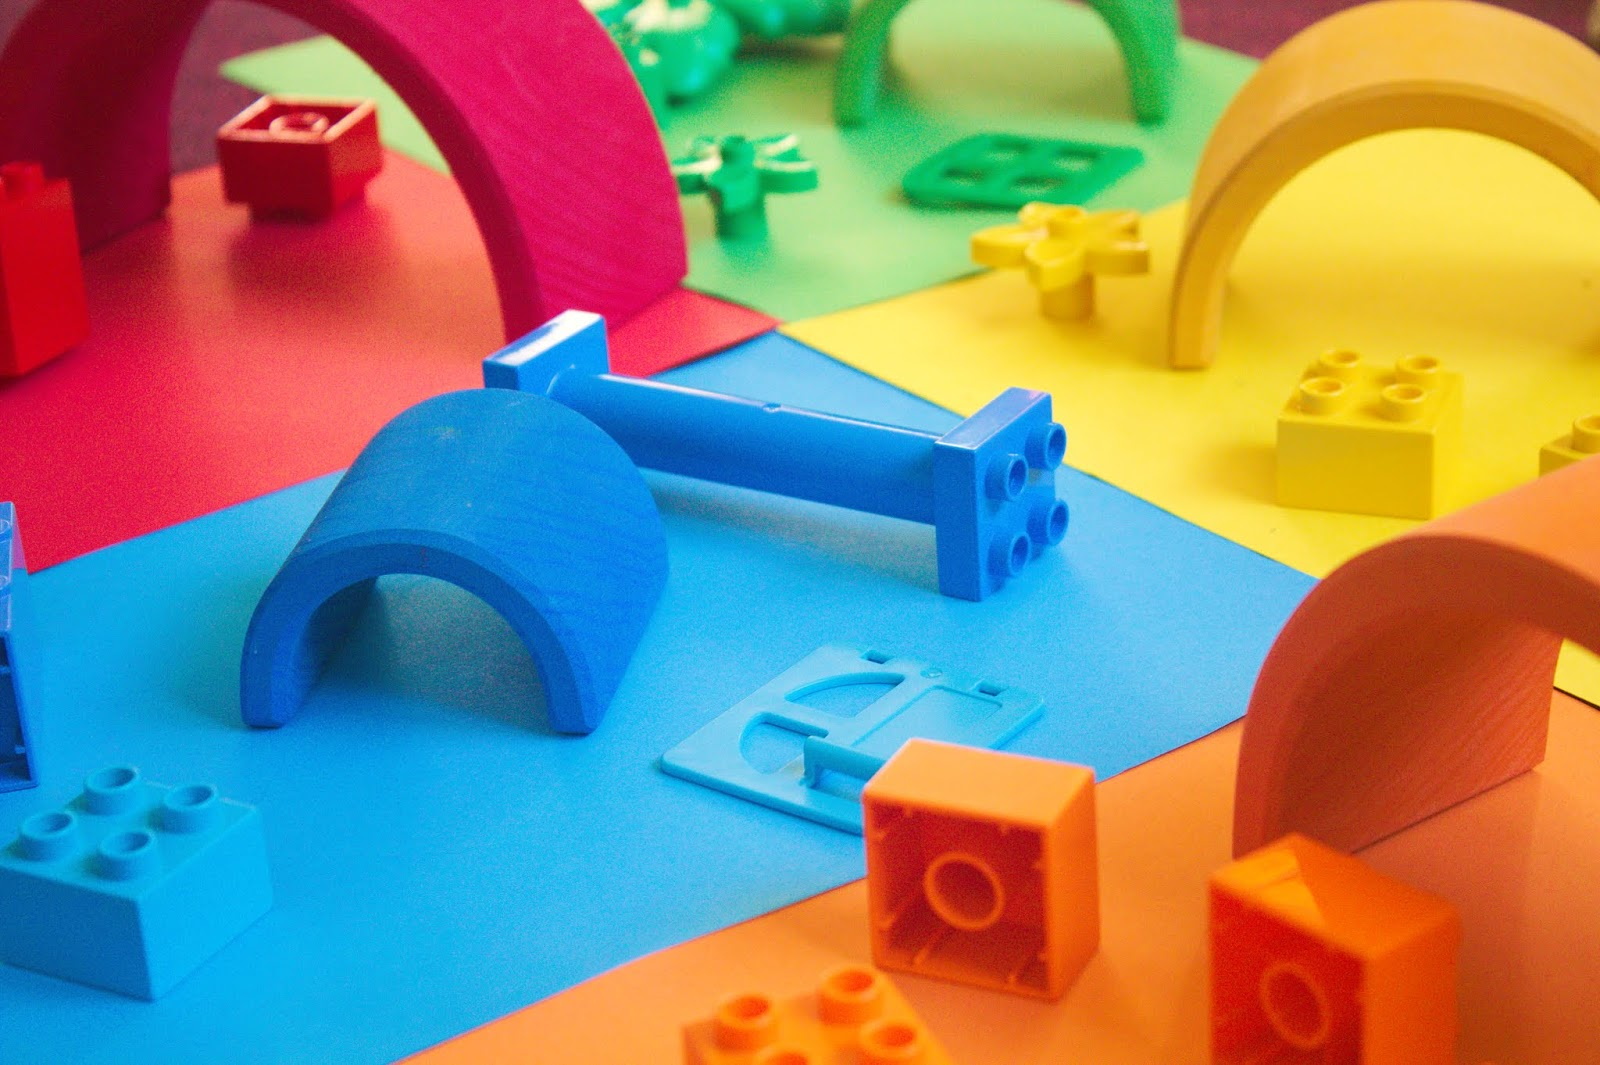 Montessori-inspired & hands-on activities with Lego Duplo. How to make the most out of toys